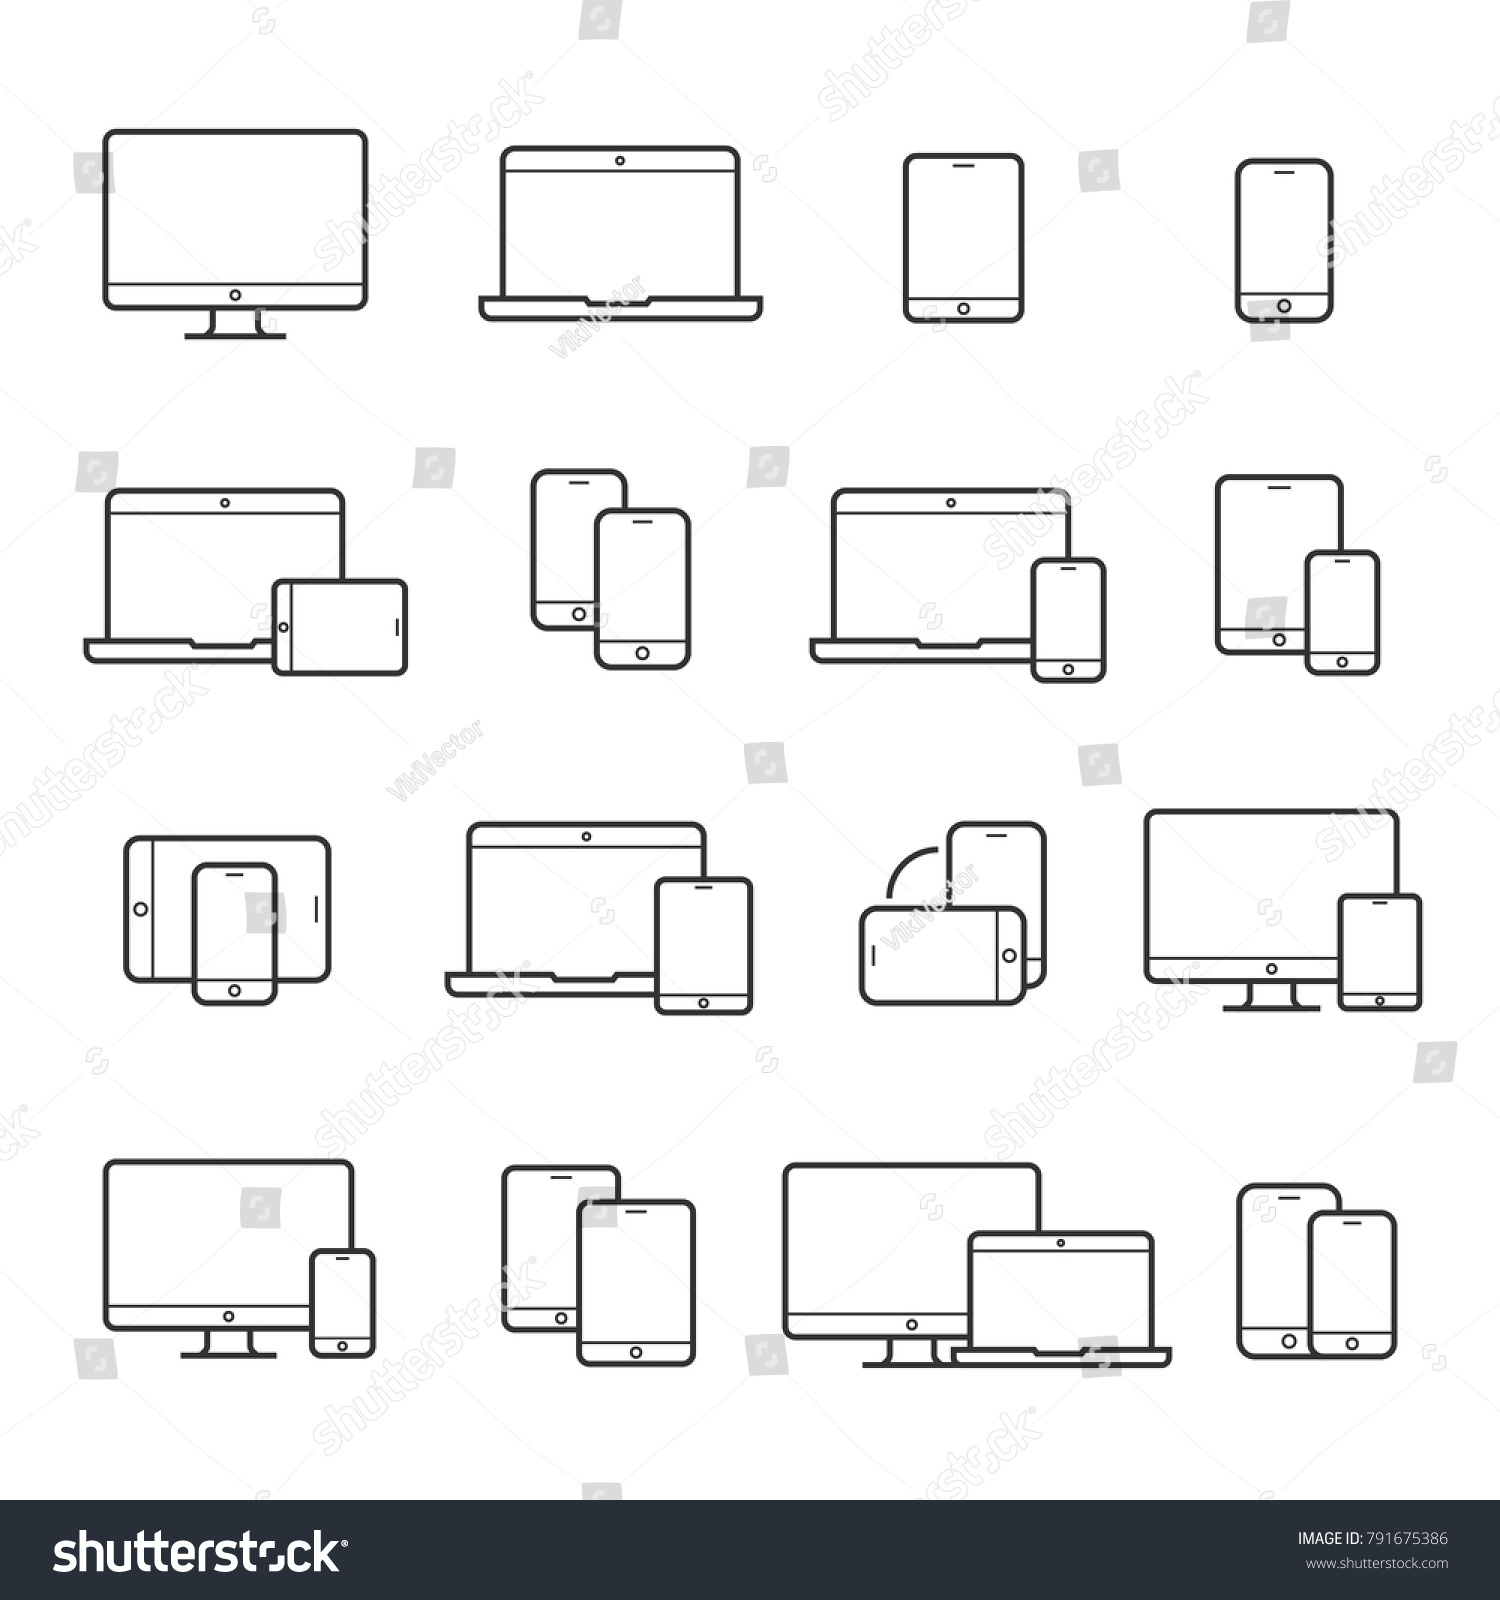 Device line icon set. Portable compact personal computer, smartphone, mobile phone, gadgets for information management, mobile calls, email sending. Vector line art illustration, white background